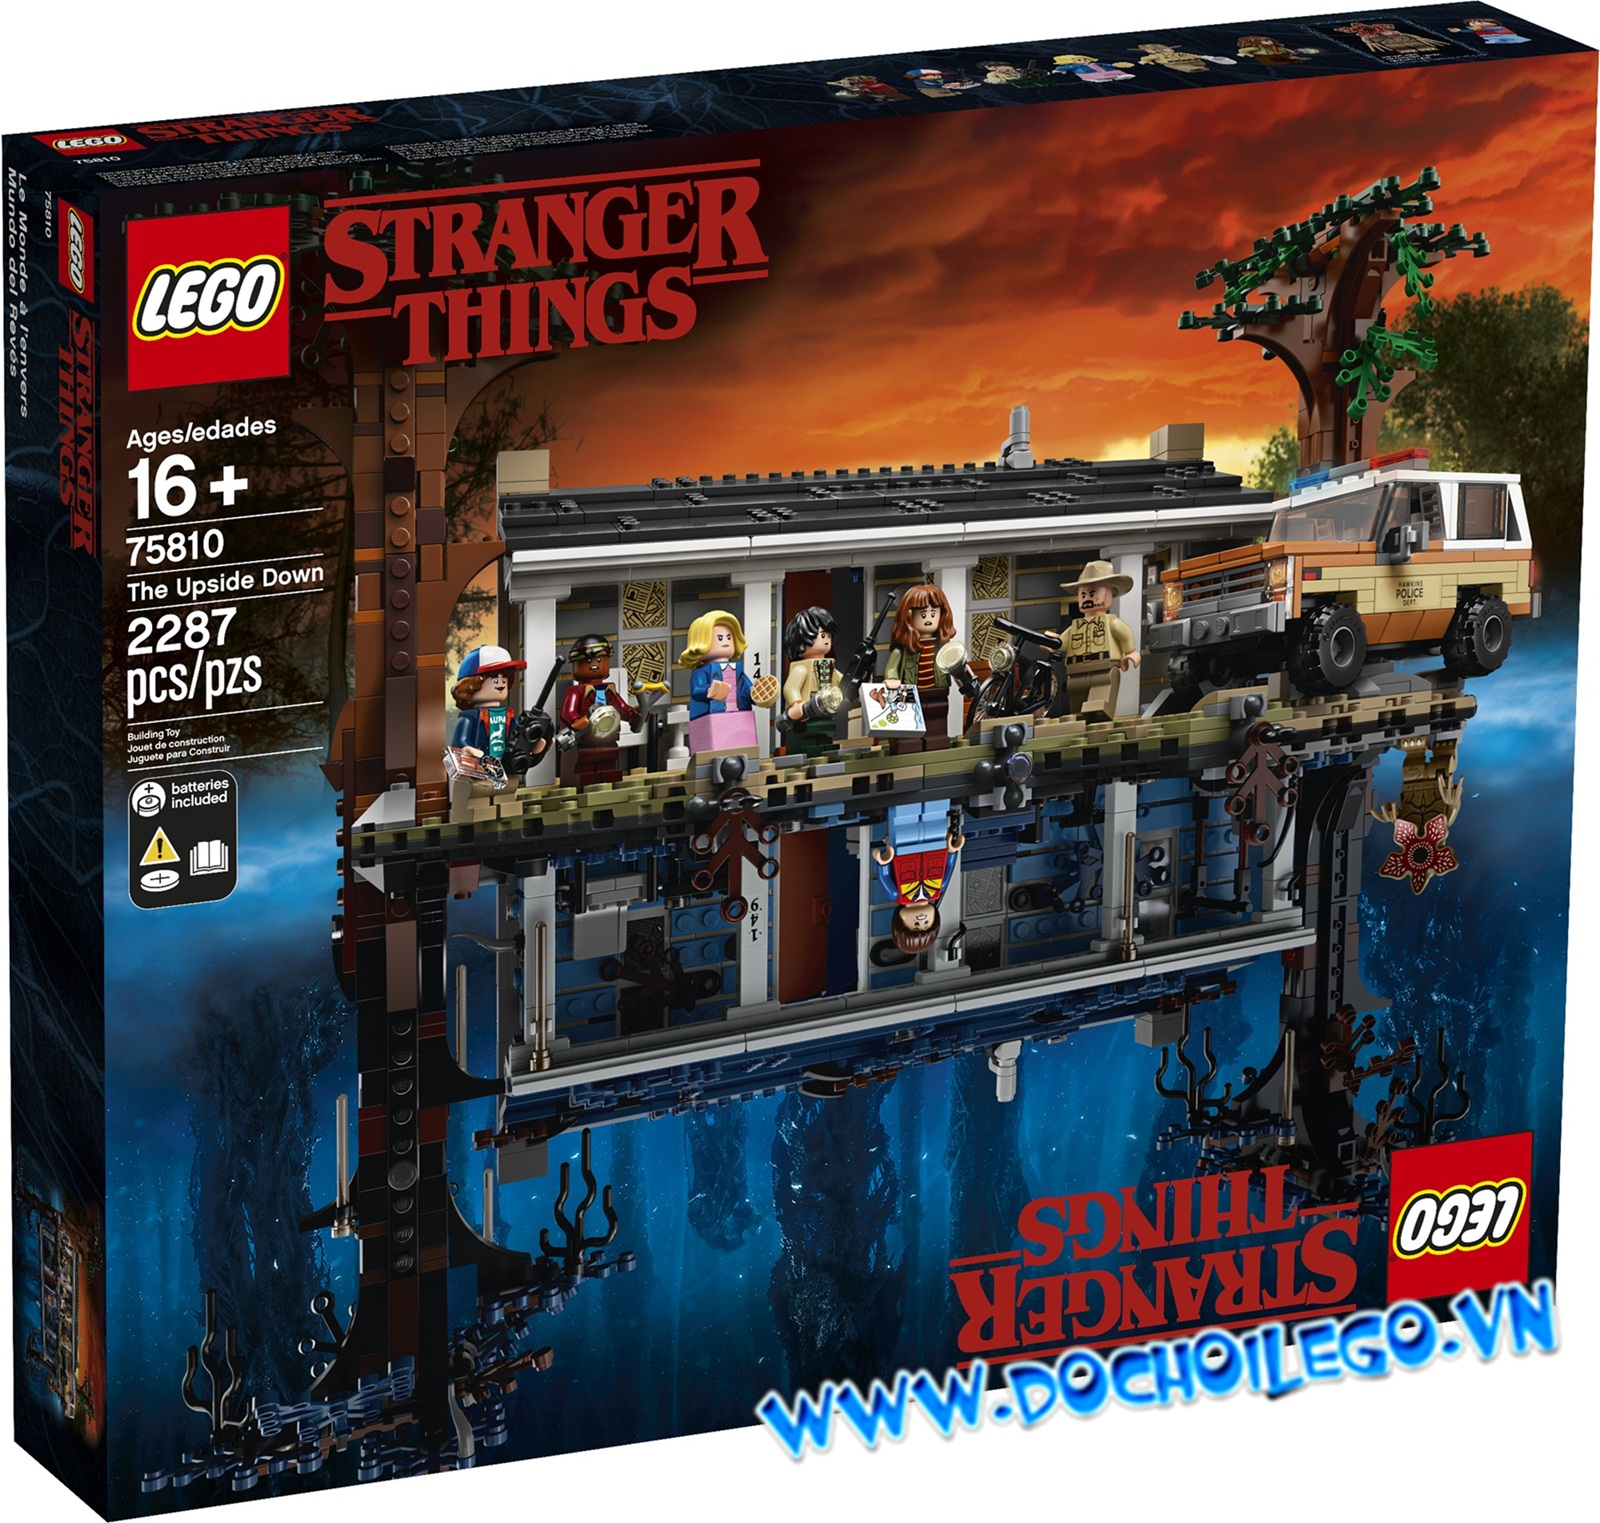 75810 LEGO Stranger things The Upside Down - Nhà up ngược.